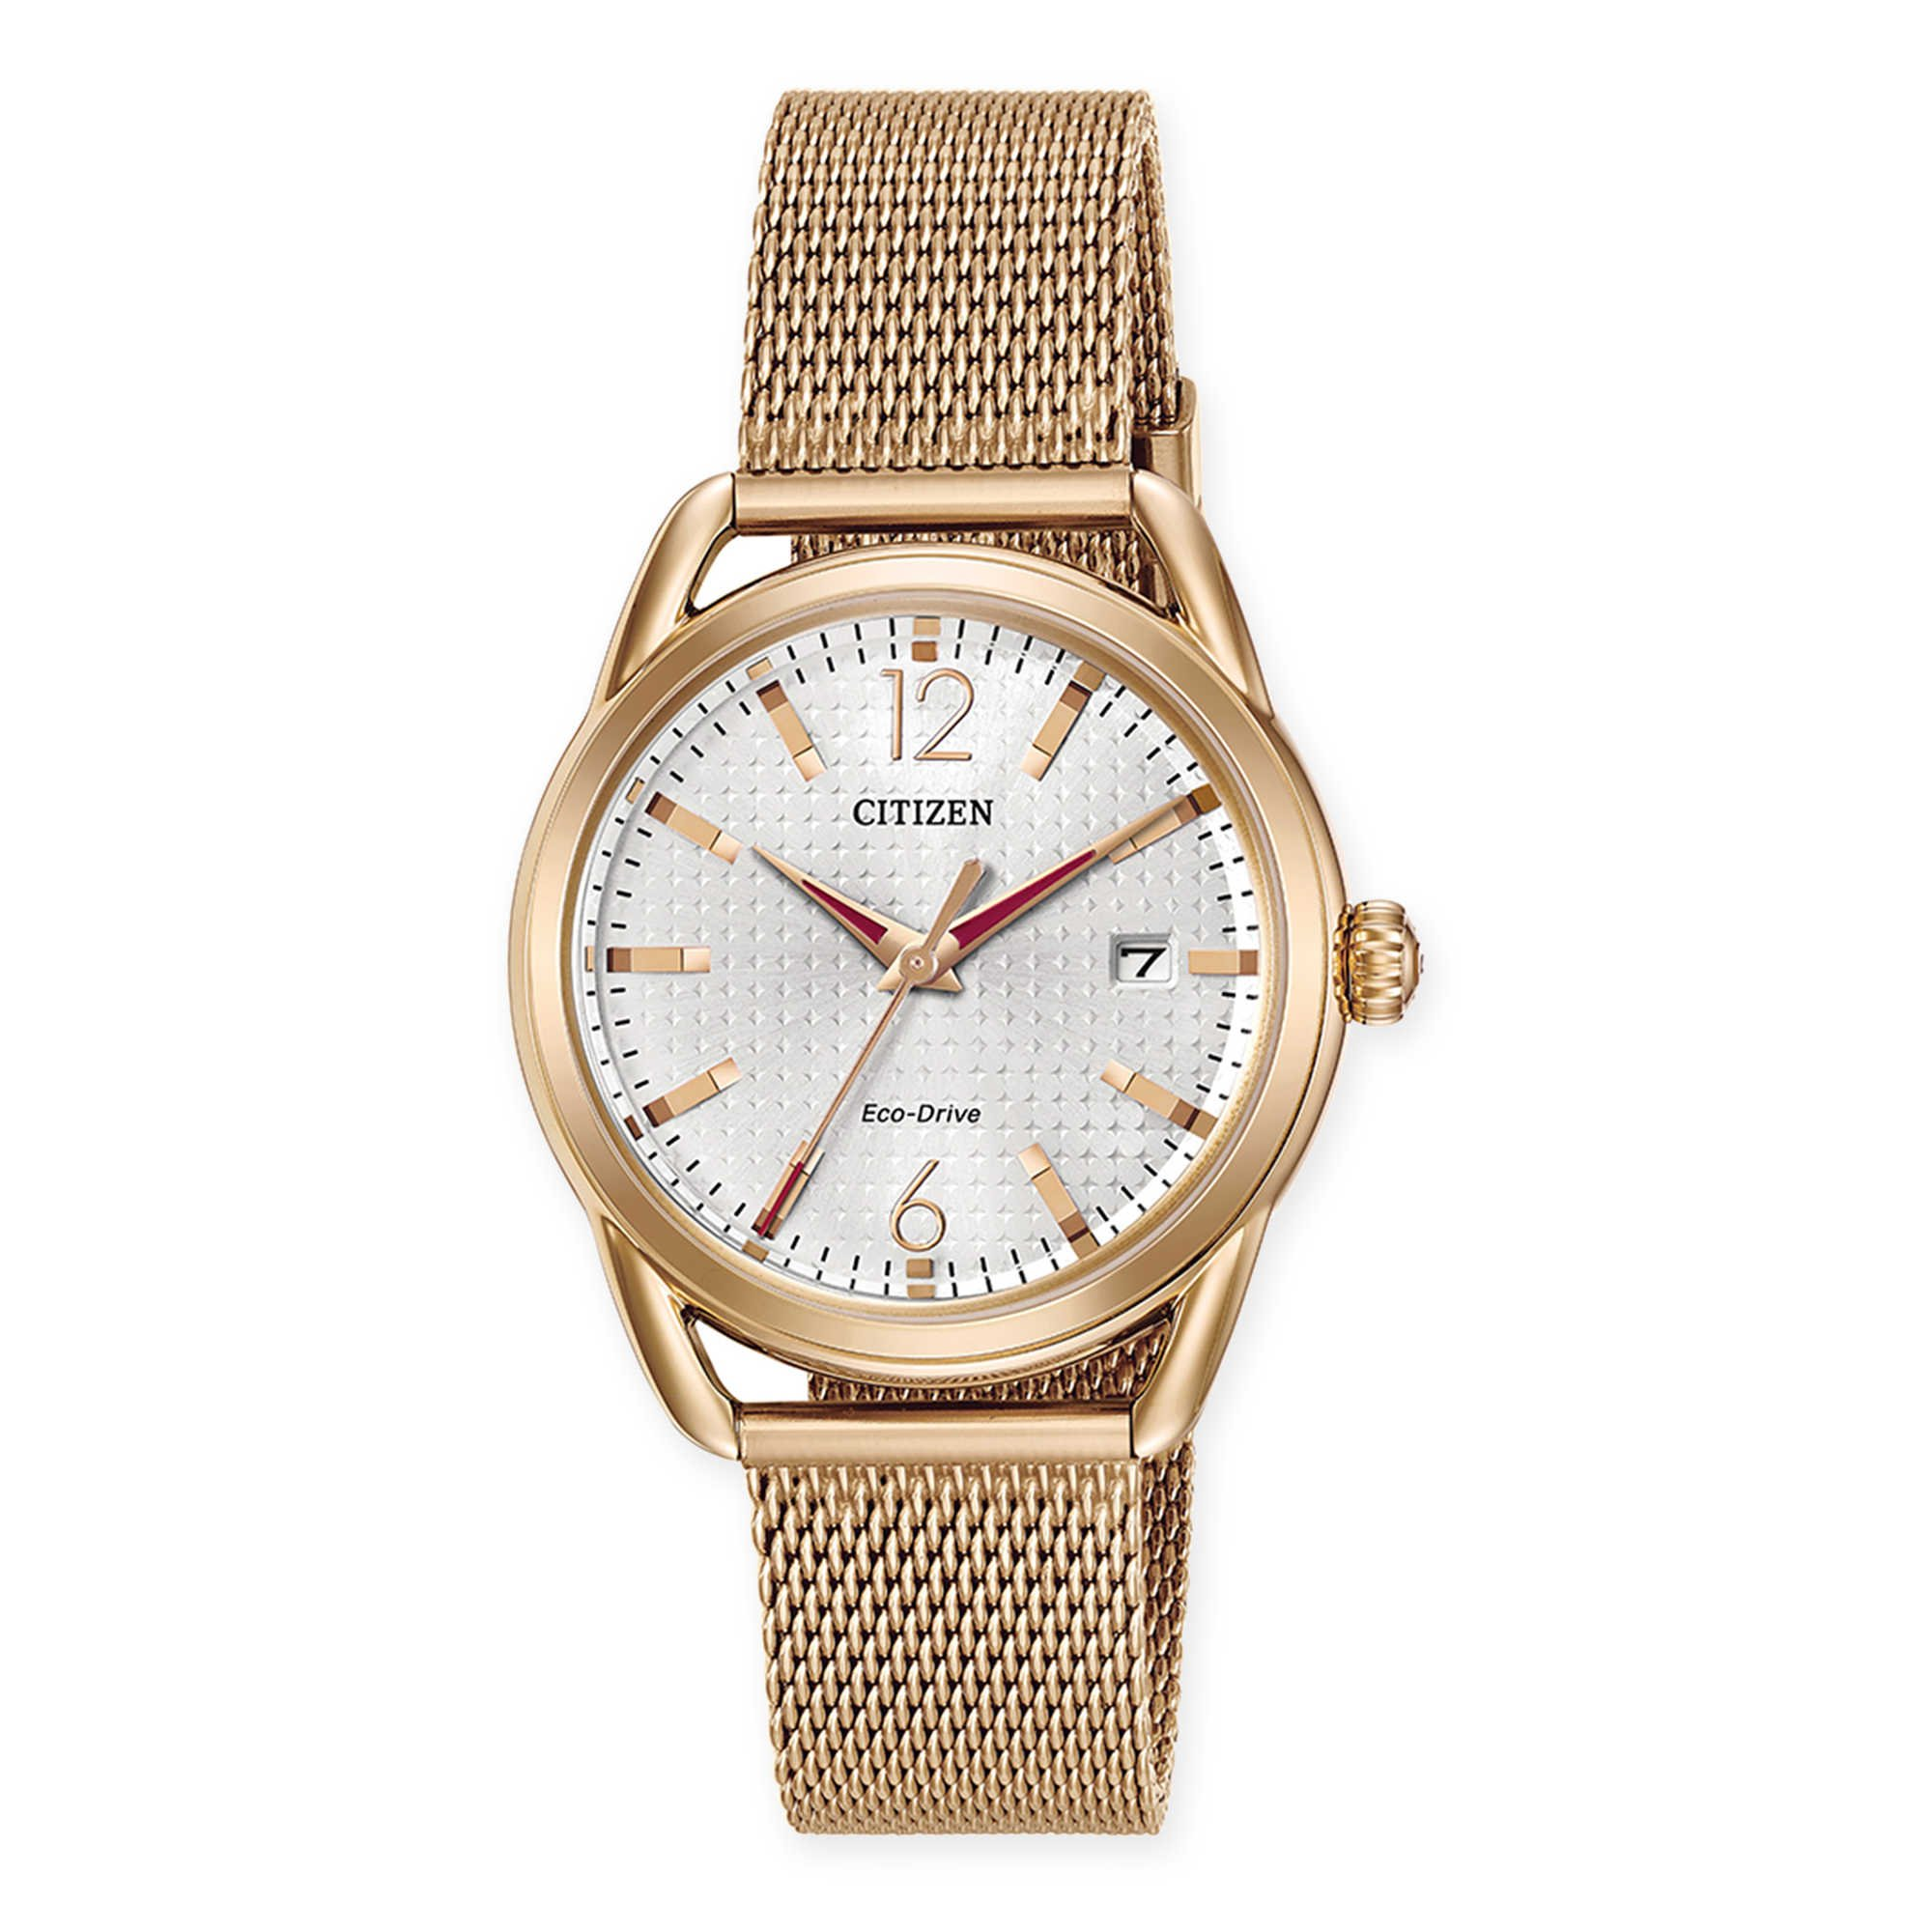 Citizen Women's Eco-Drive Mesh Bracelet Watch